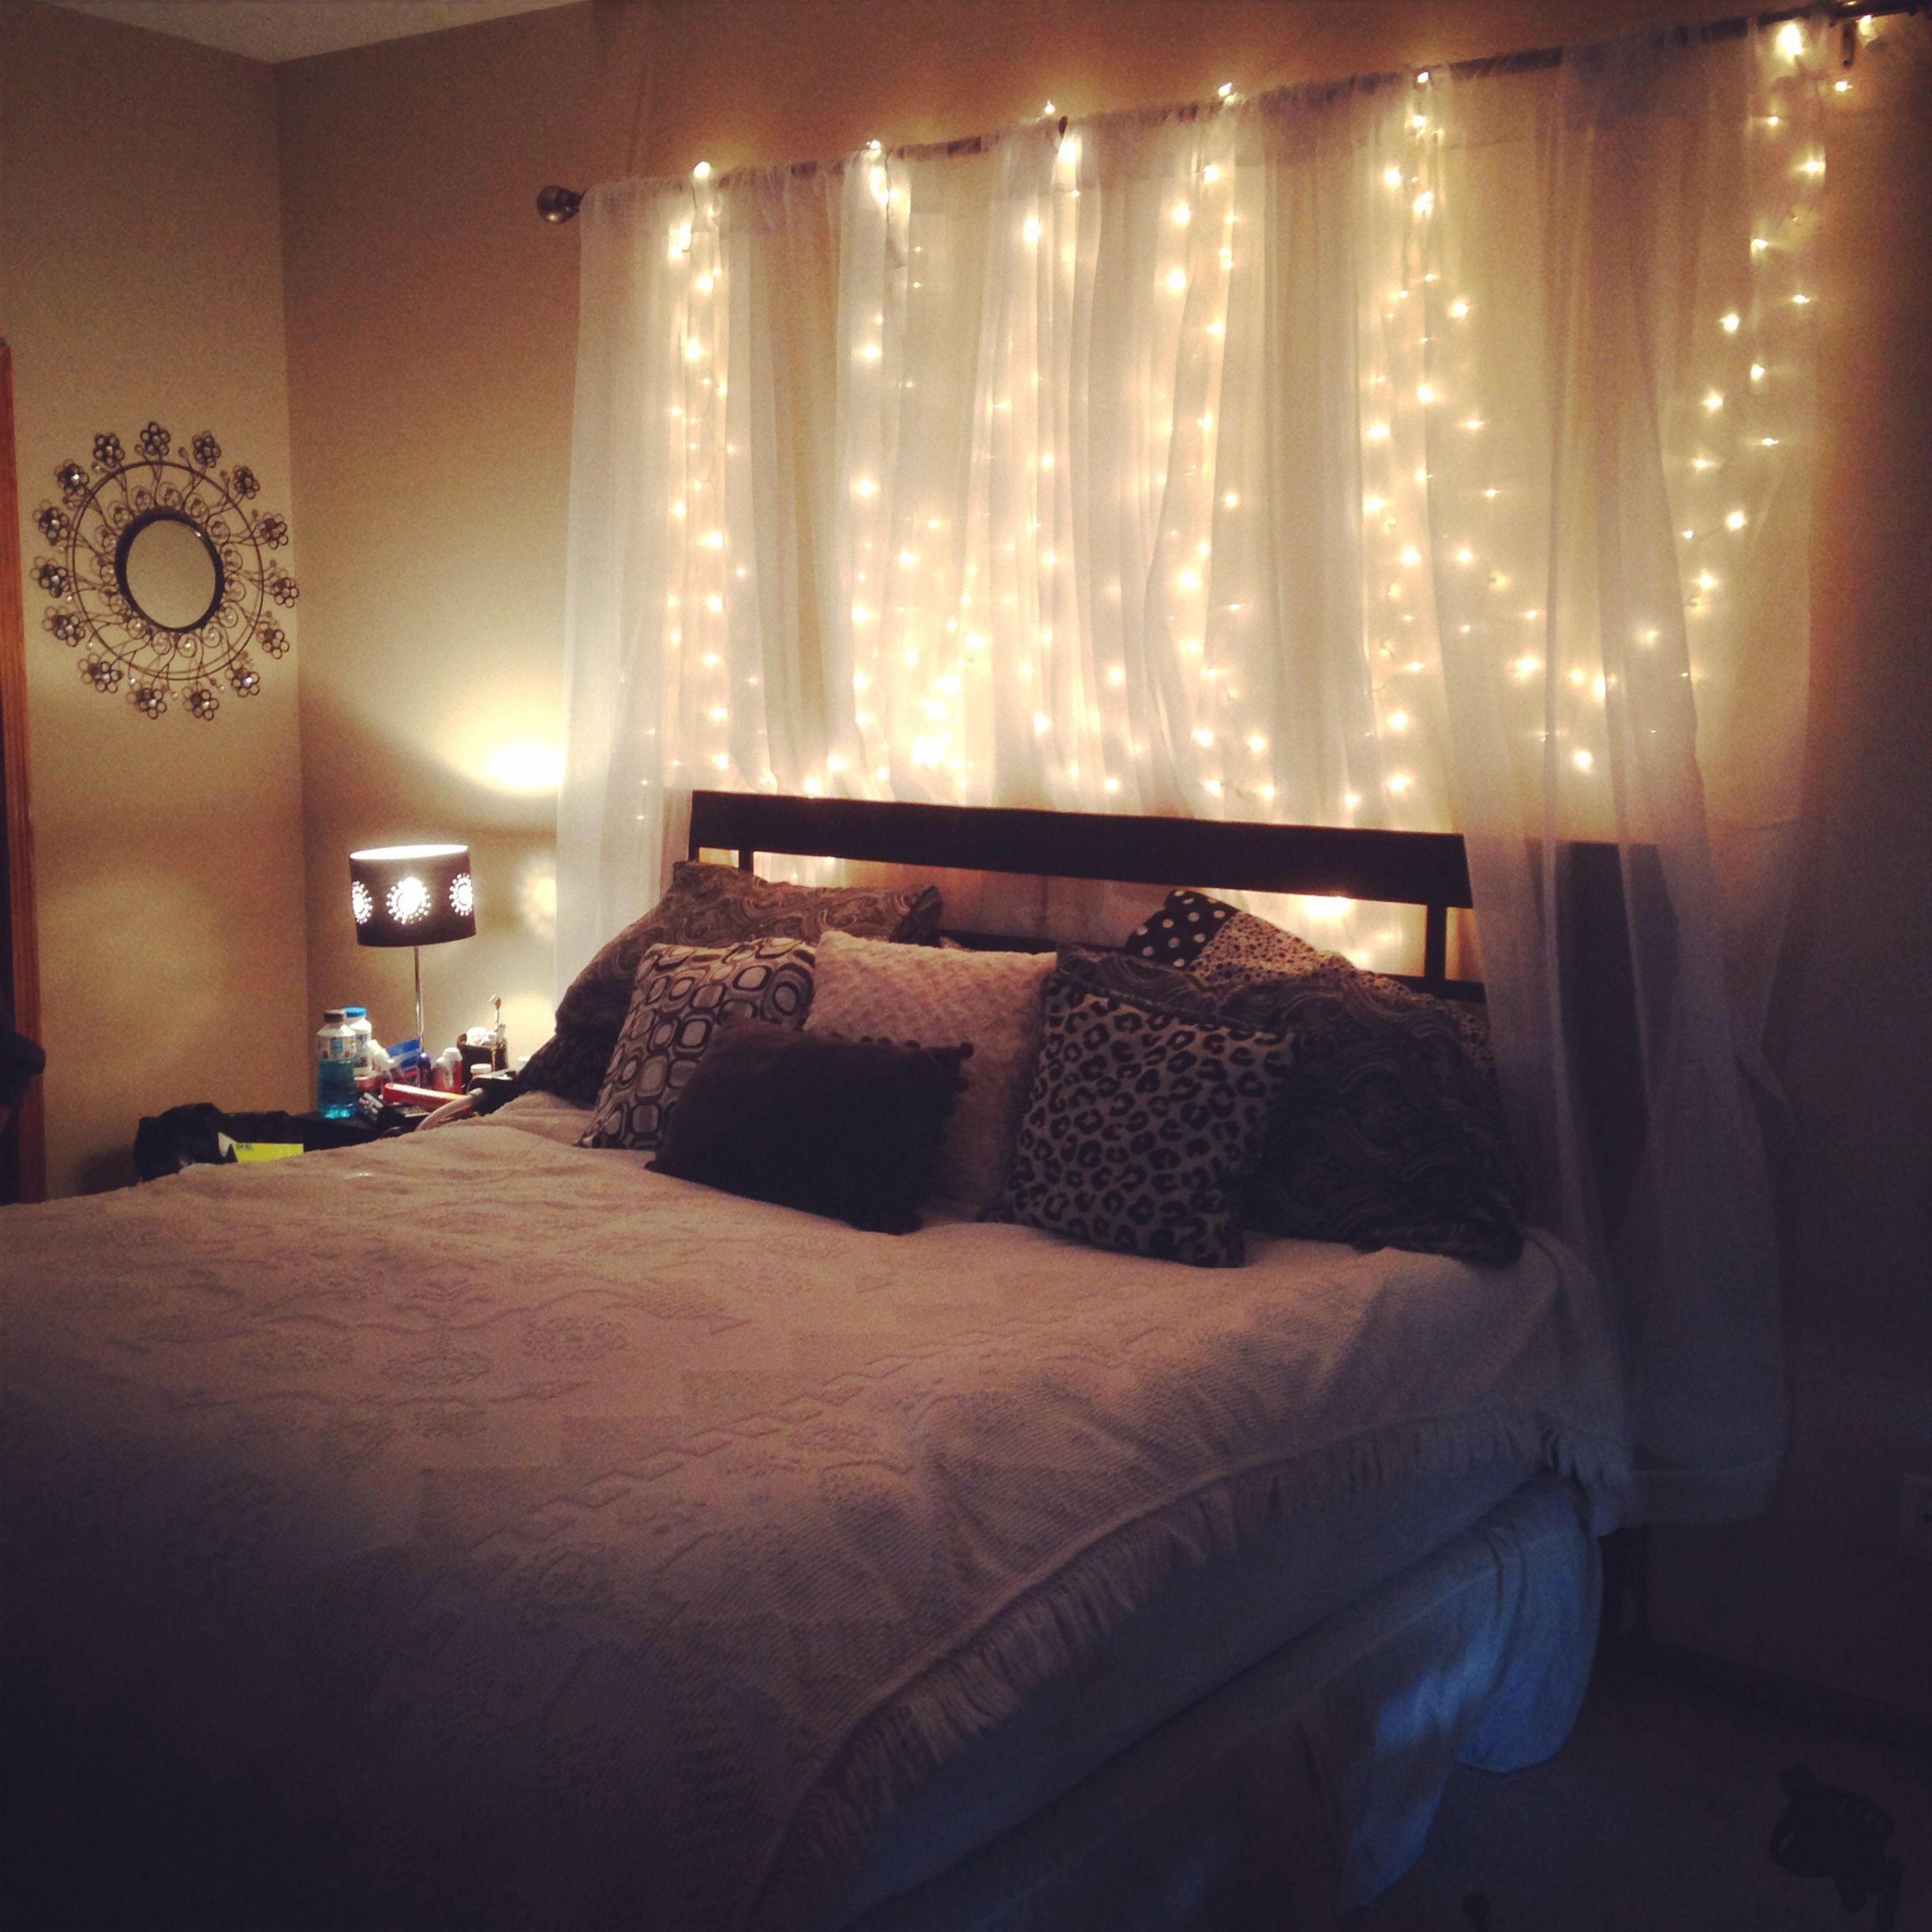 Homemade Headboard, Curtains, Lights. Weekend Project